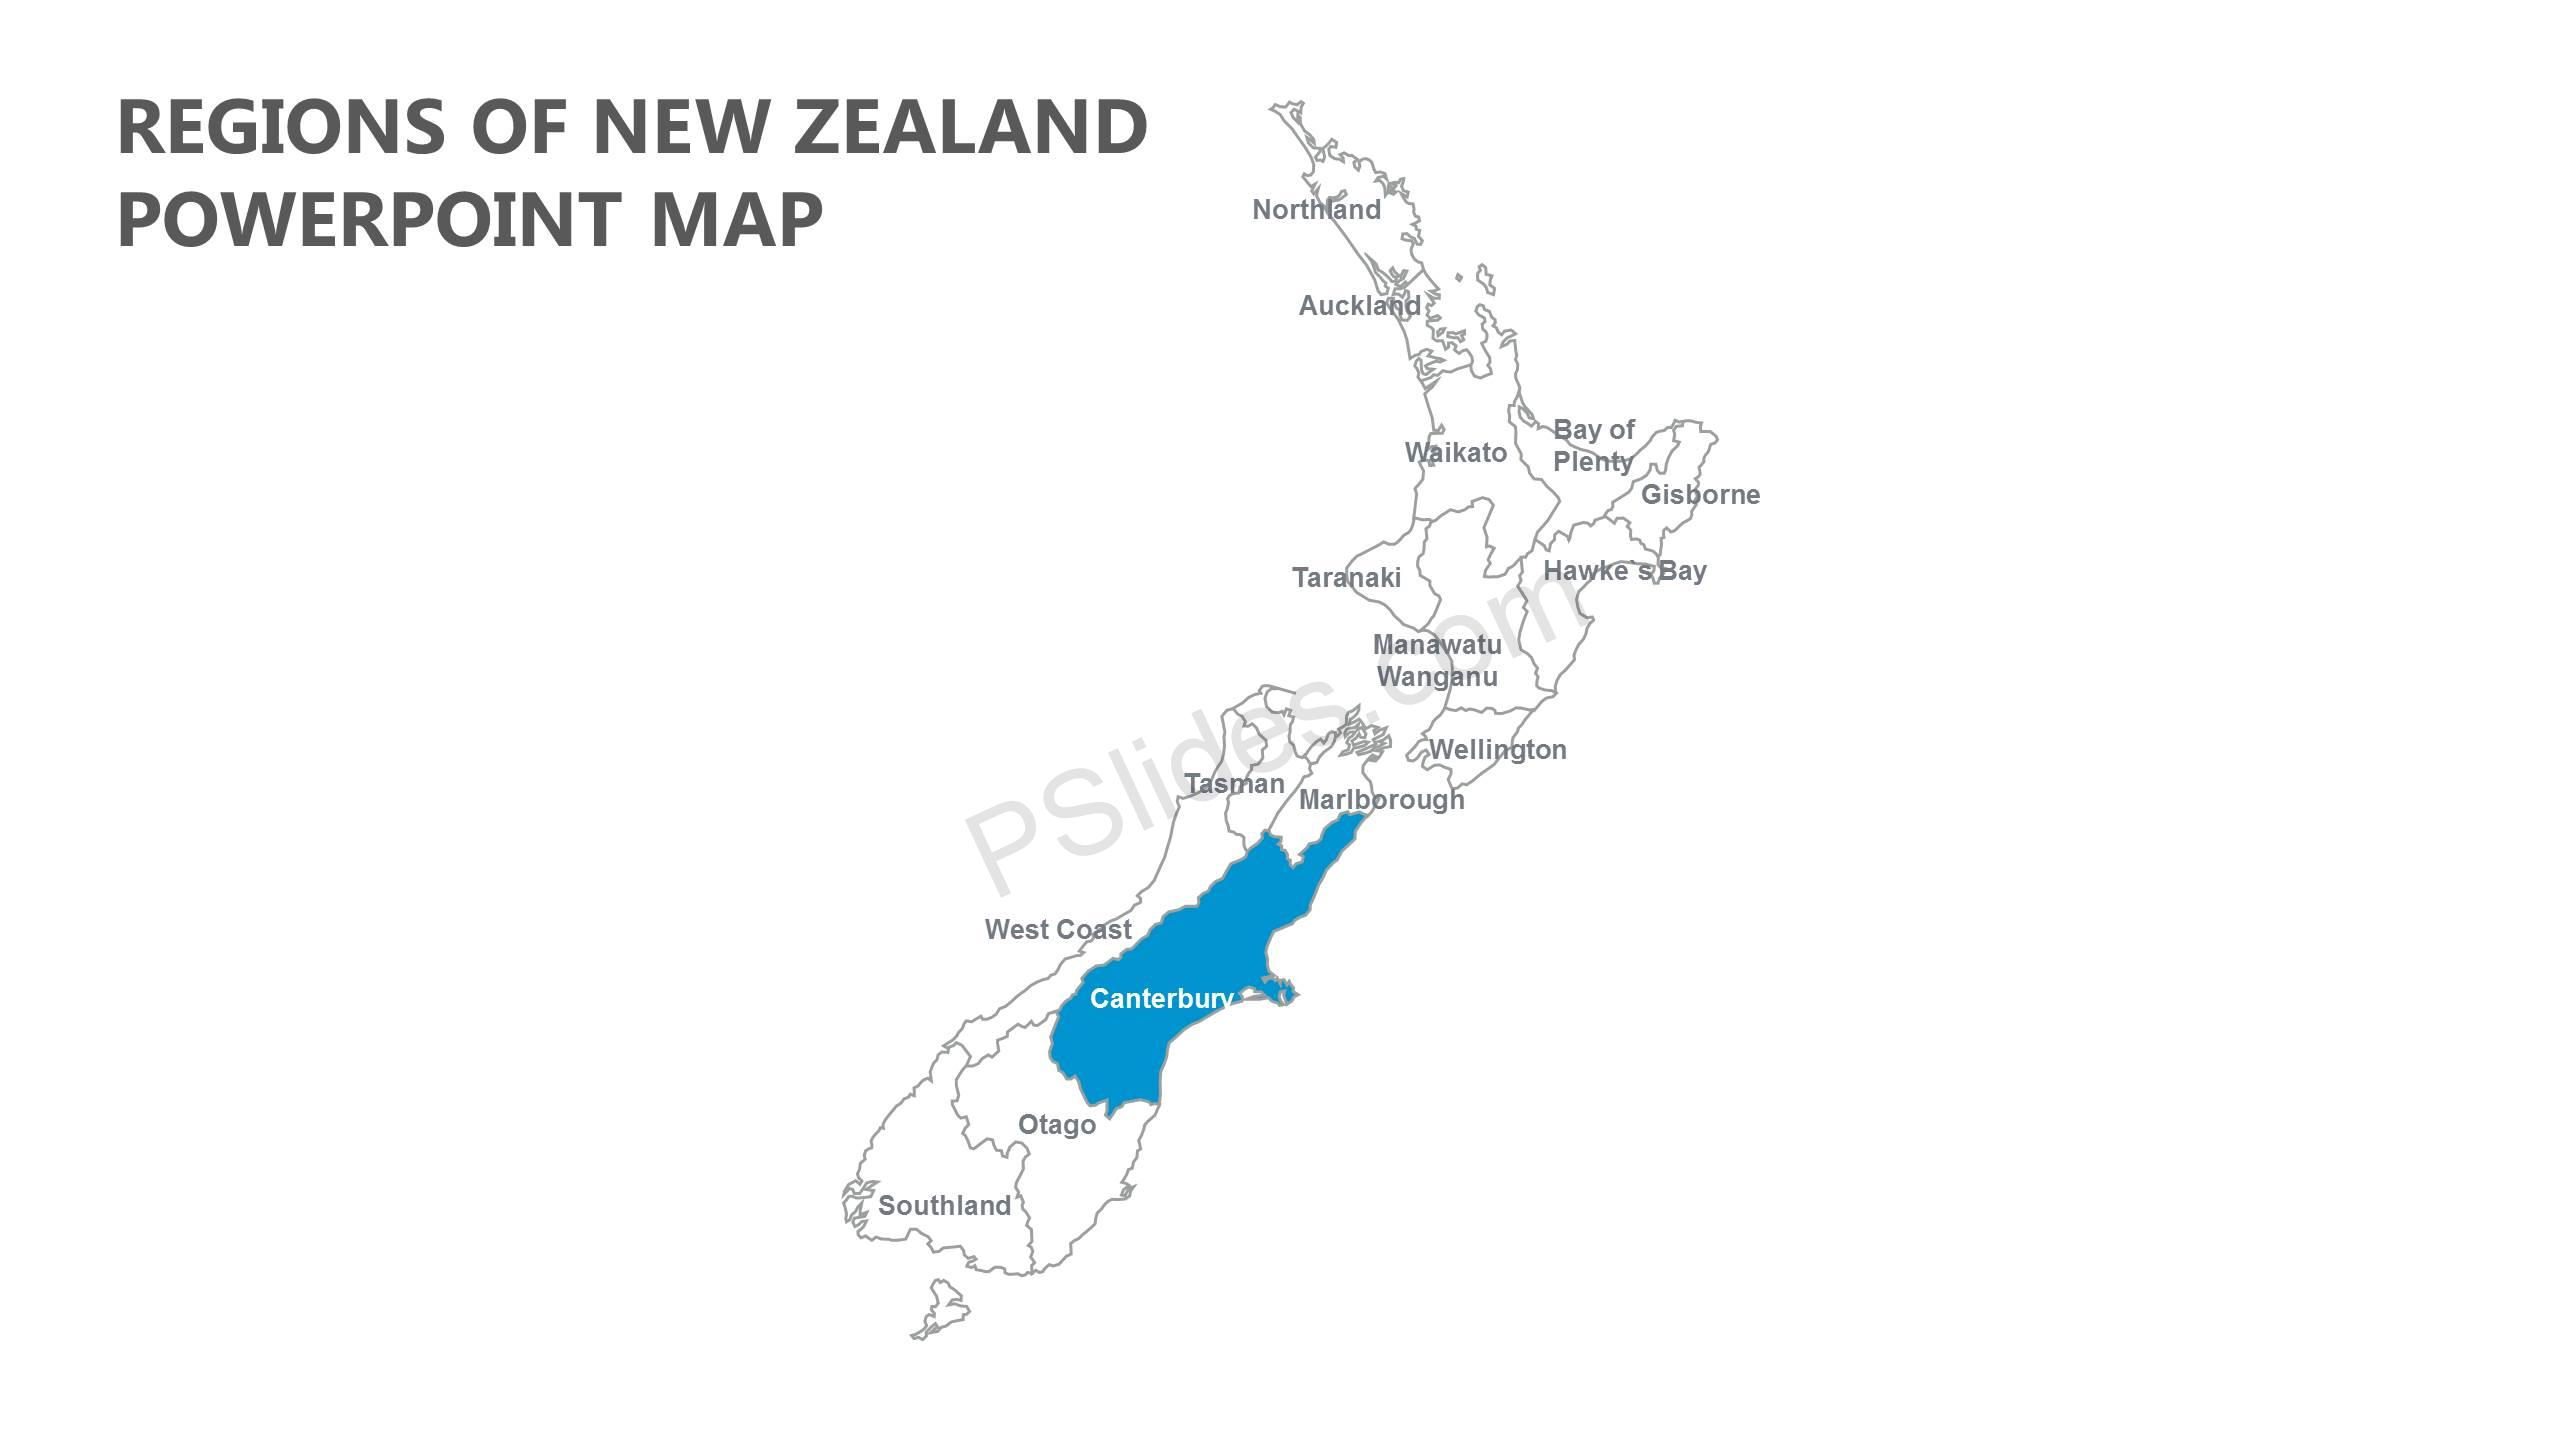 Regions Of New Zealand Powerpoint Map Pslides